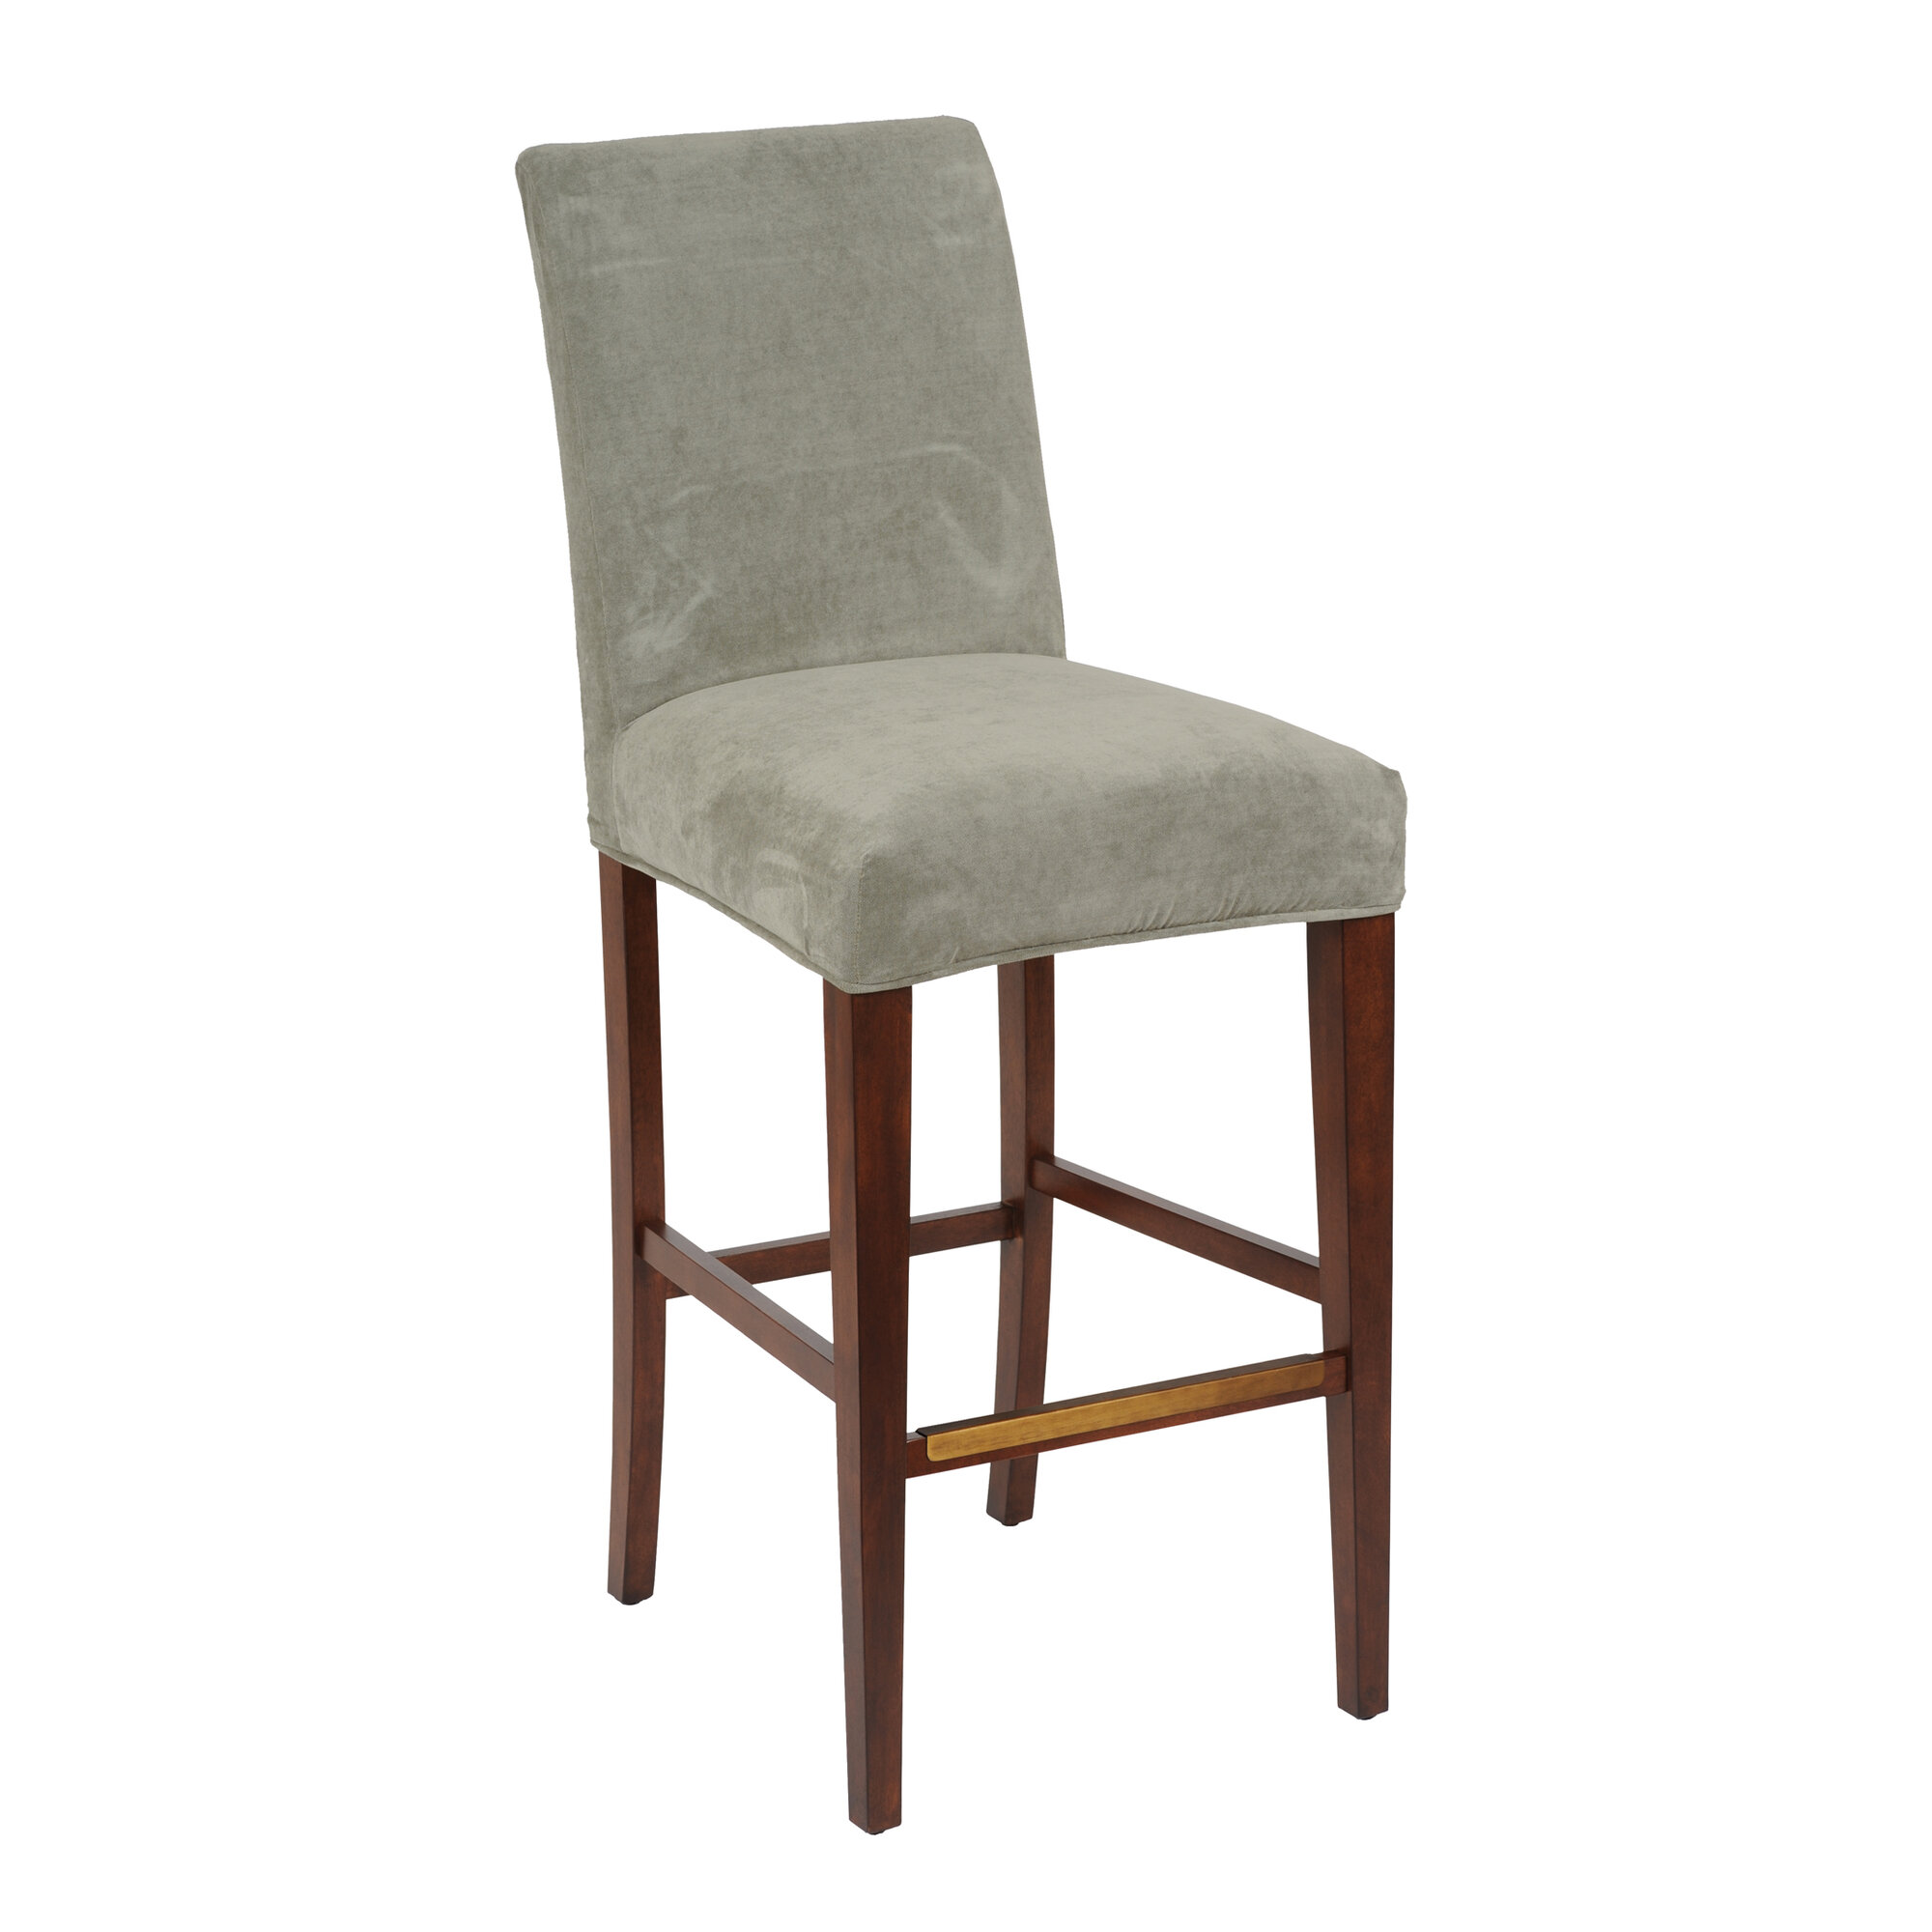 Bailey Street Couture Covers Bar Stool Slipcover